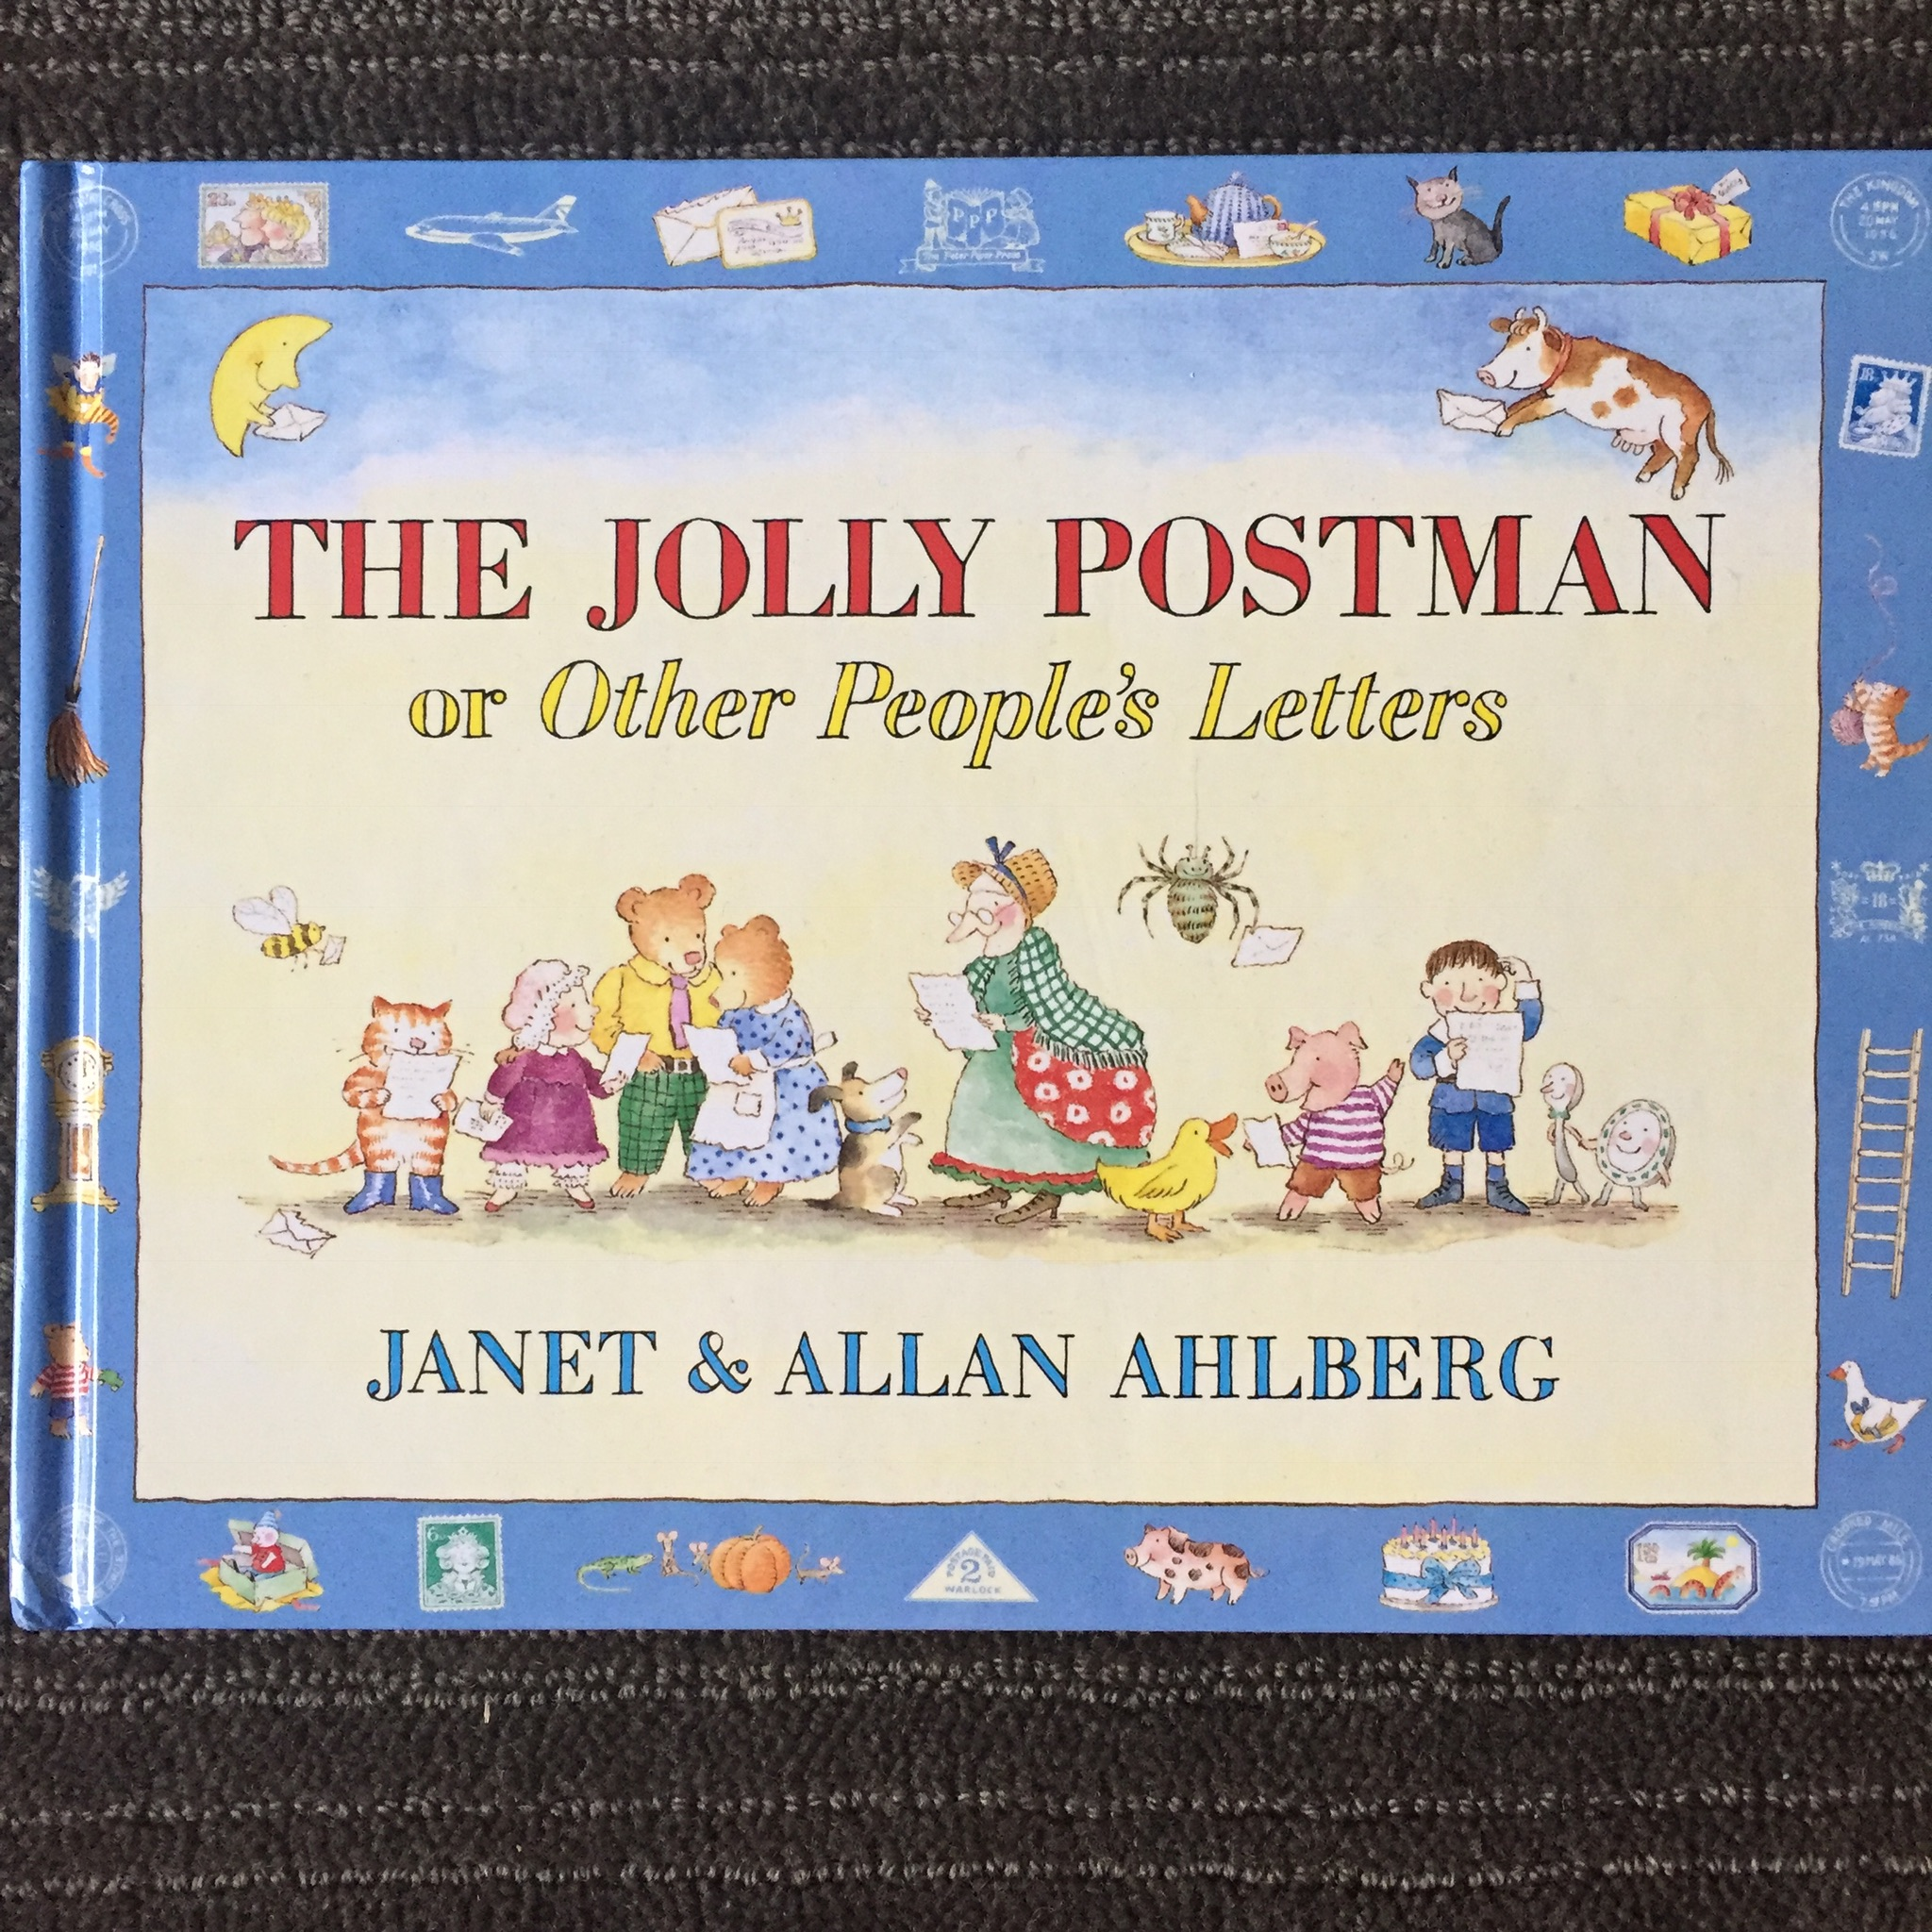 Review - The Jolly Postman or Other People's Letters